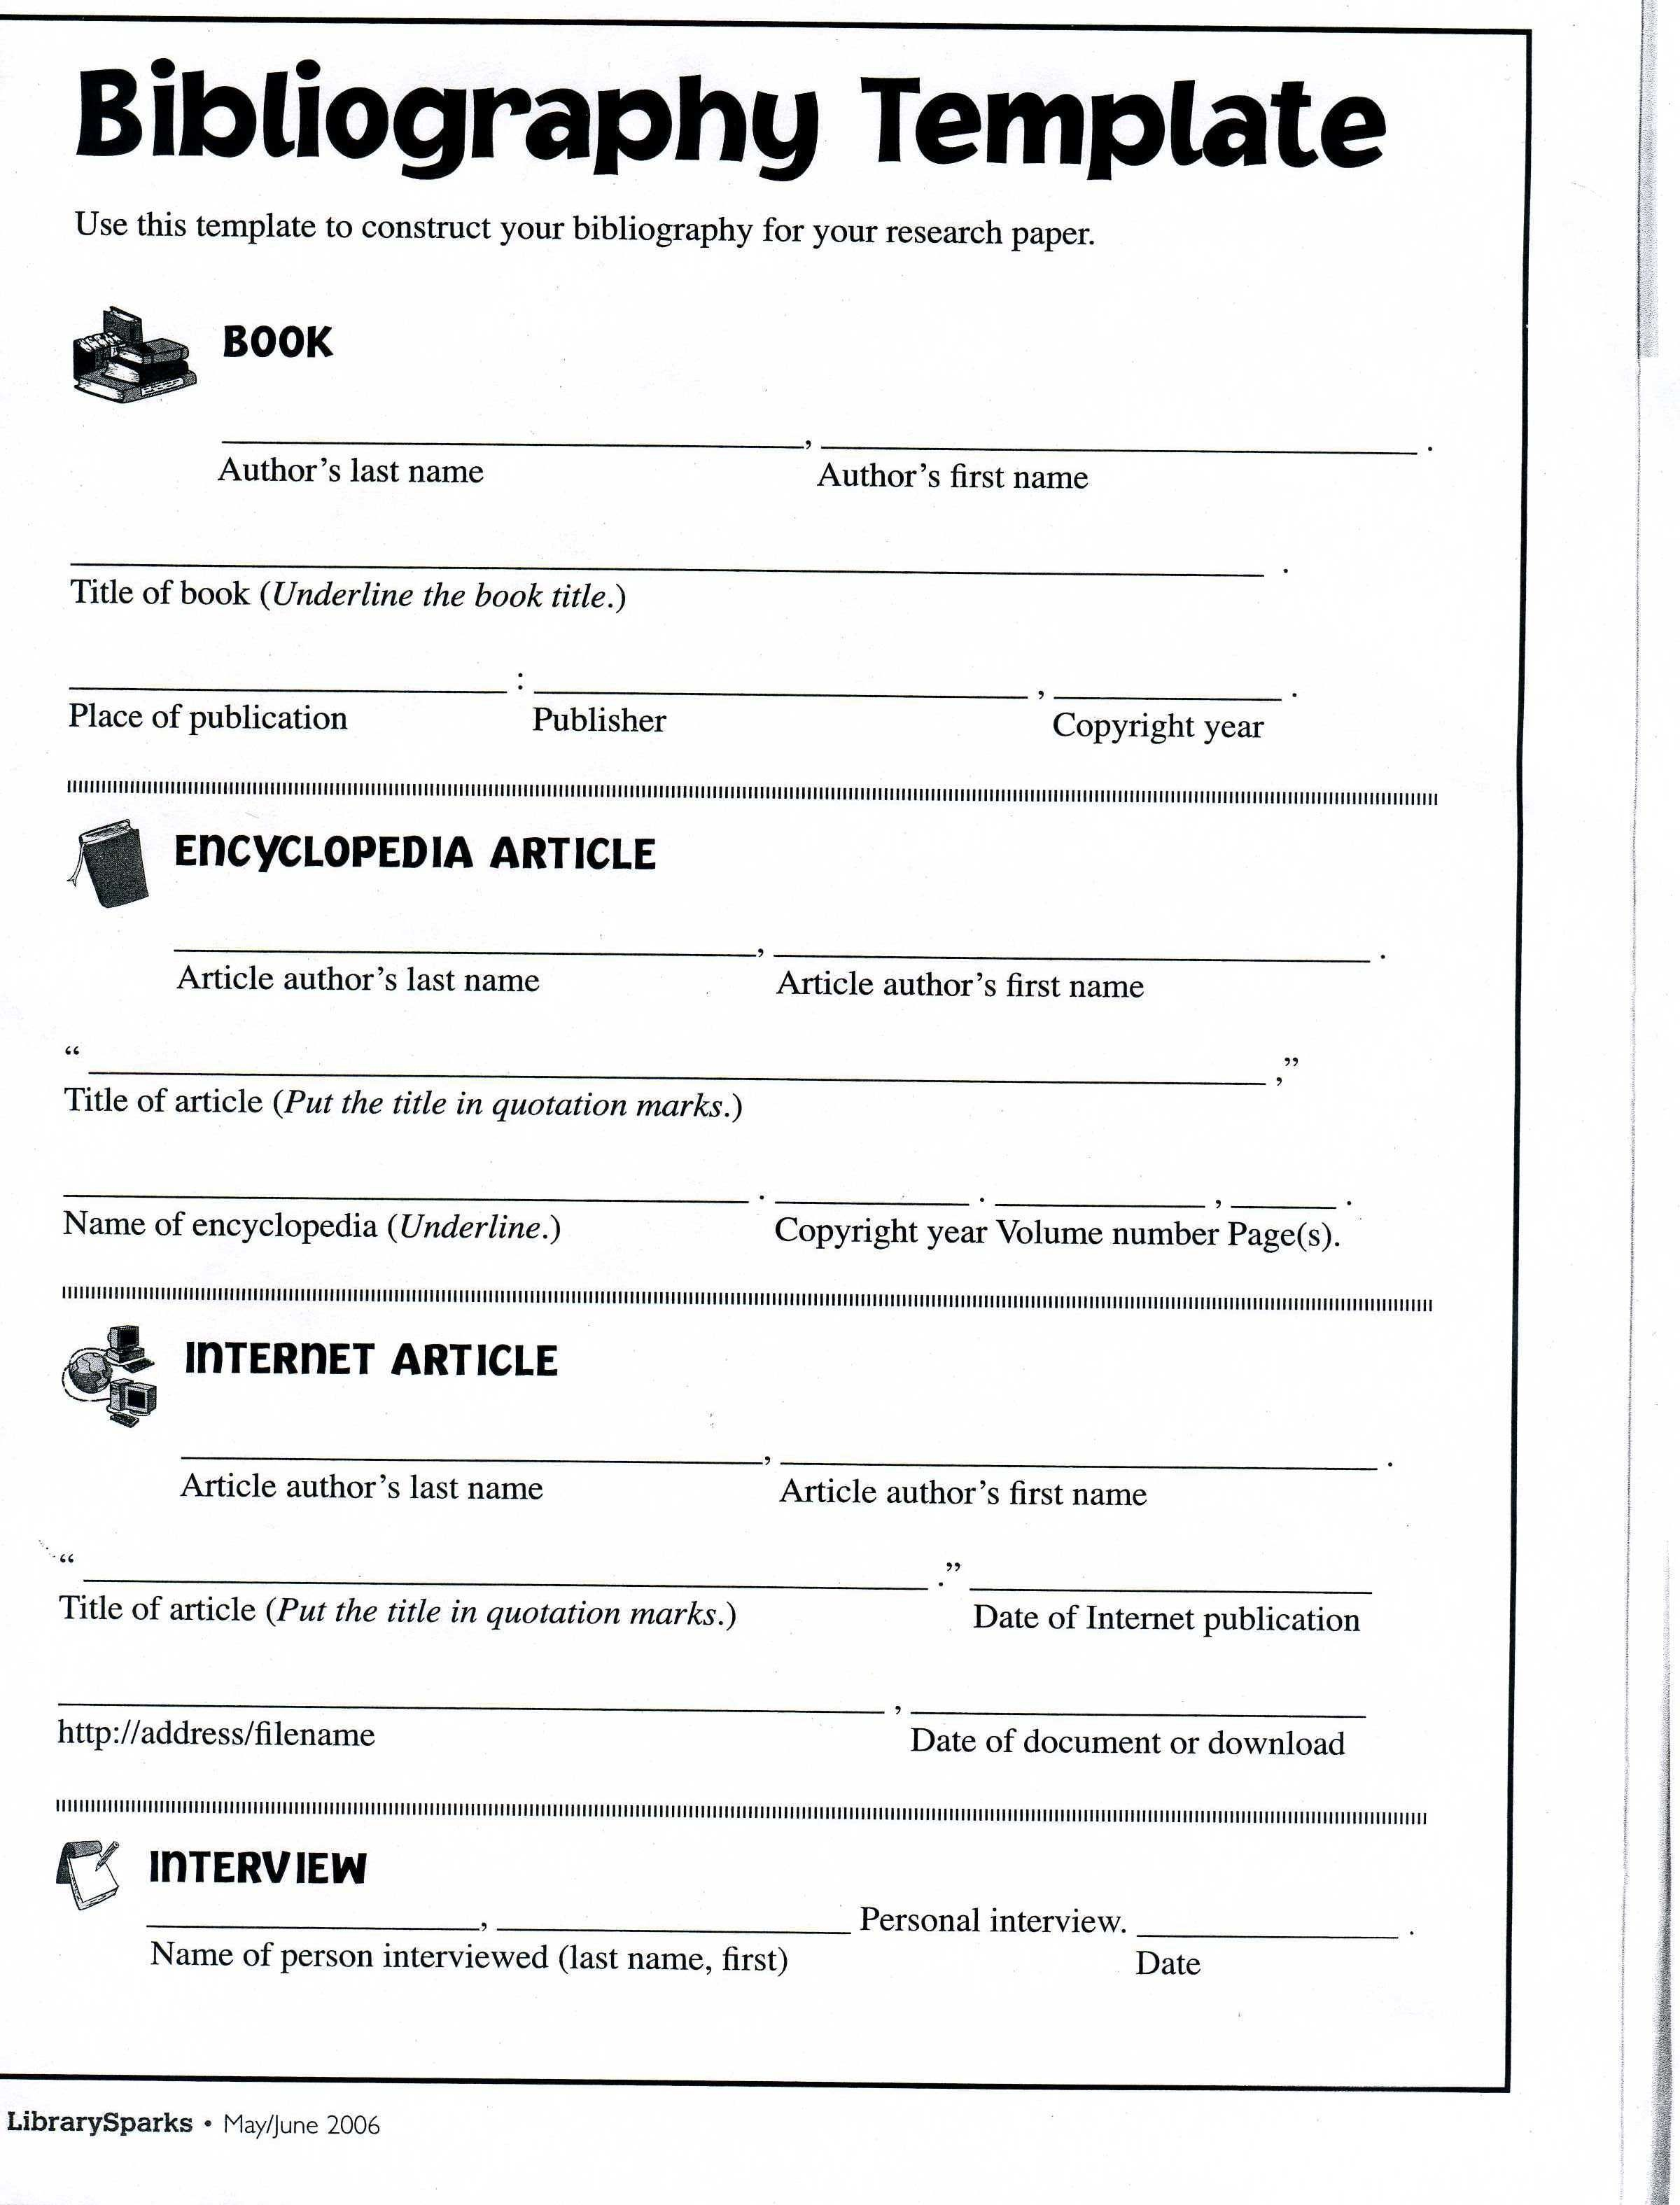 research paper outline format elementary These sample essay outlines will help your students organize and format their ideas before writing an essay or research paper outline for a research paper.